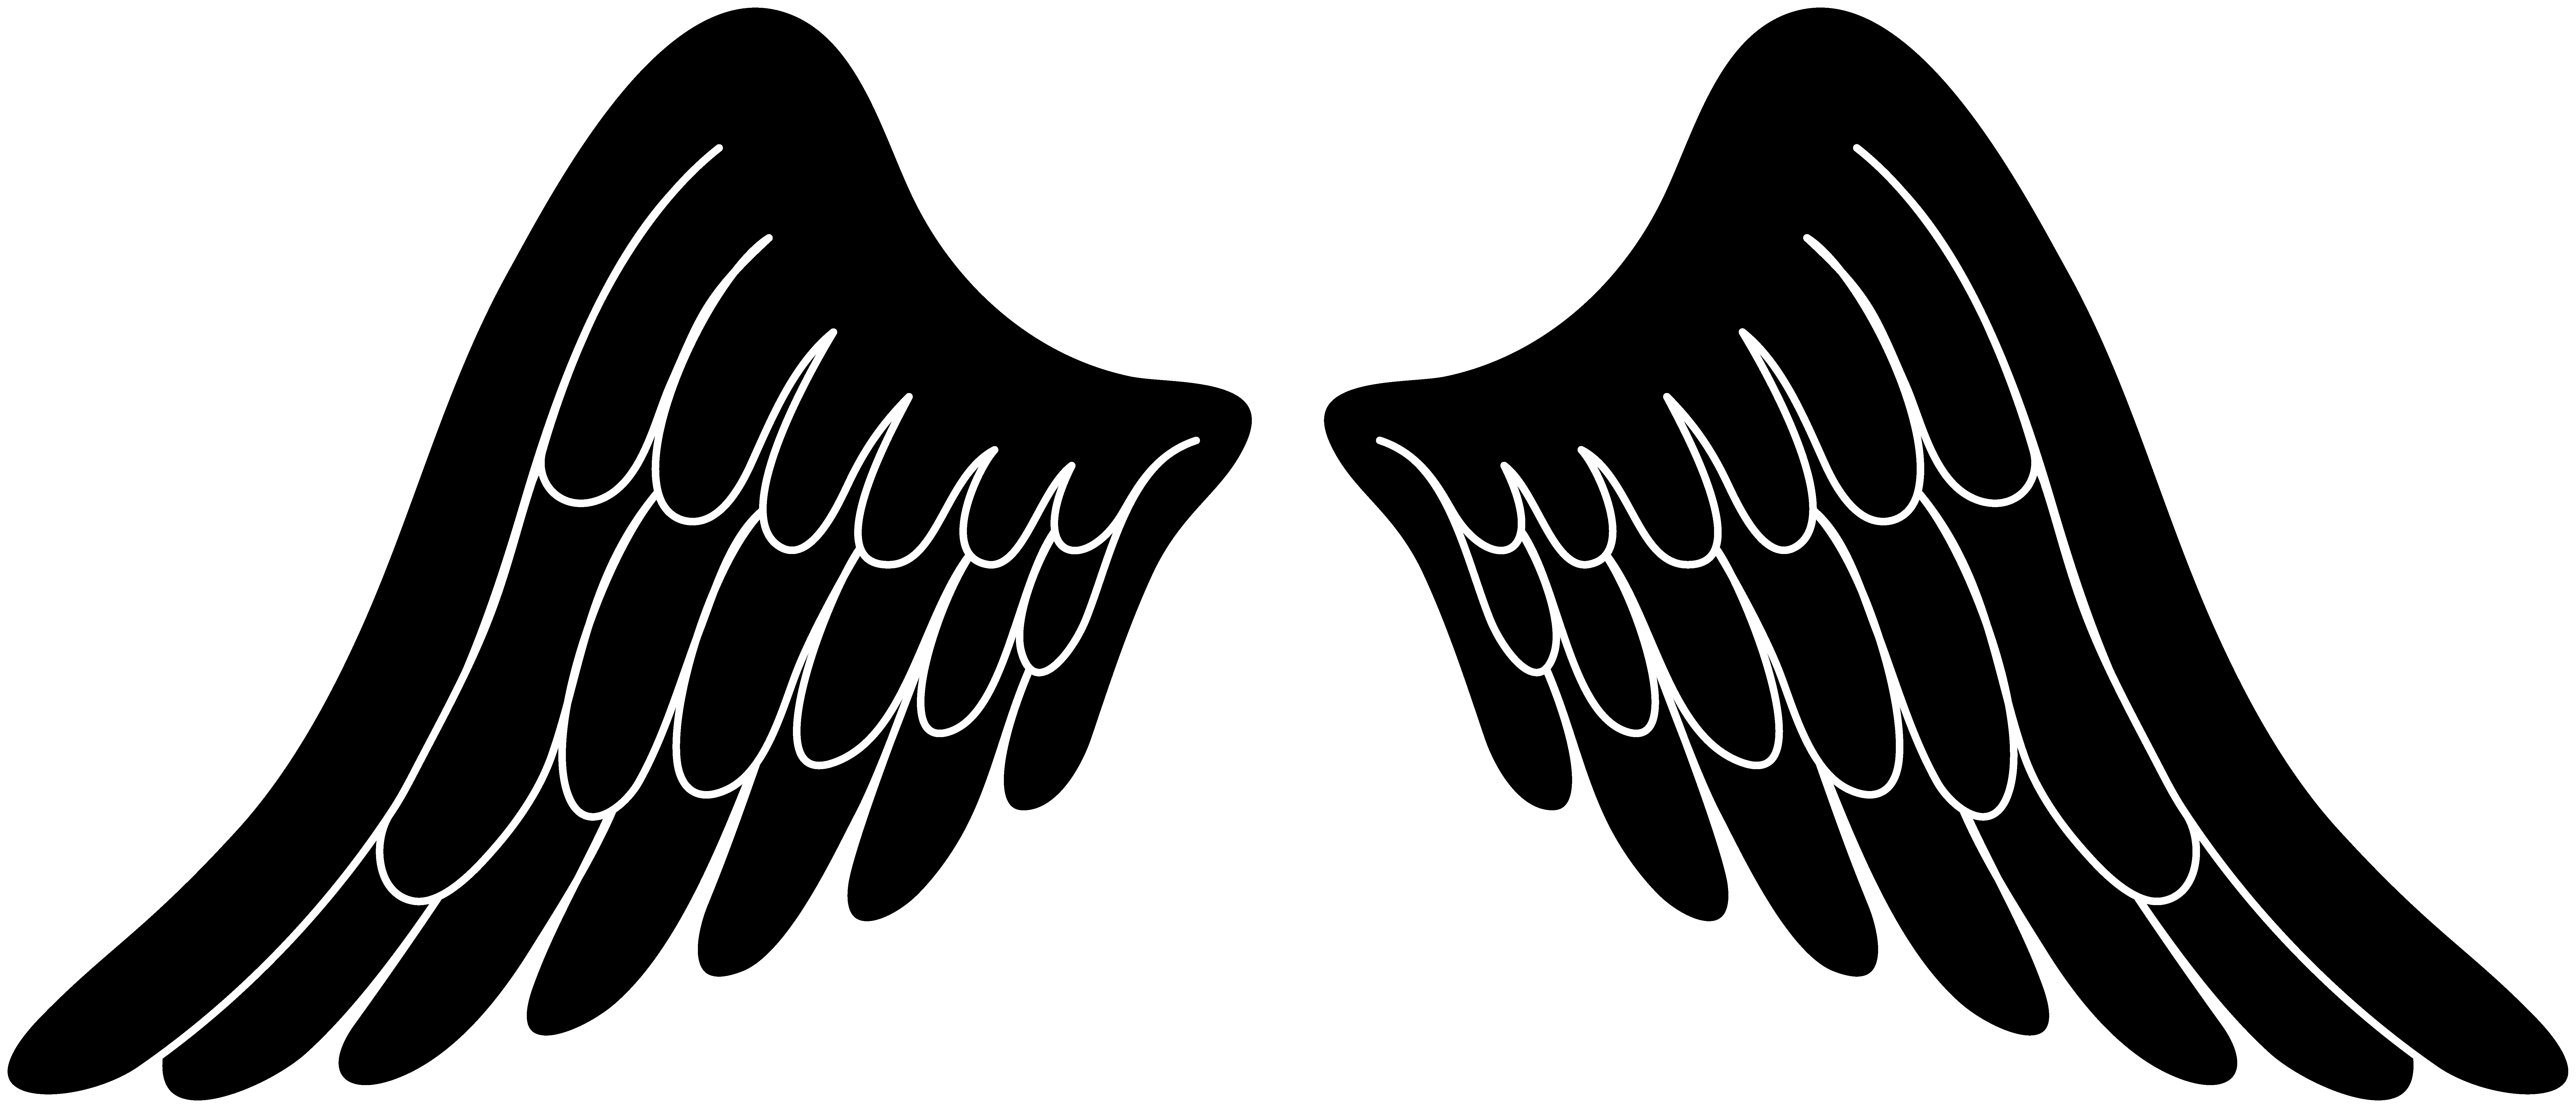 Angel wings vector png. Wing clip art free